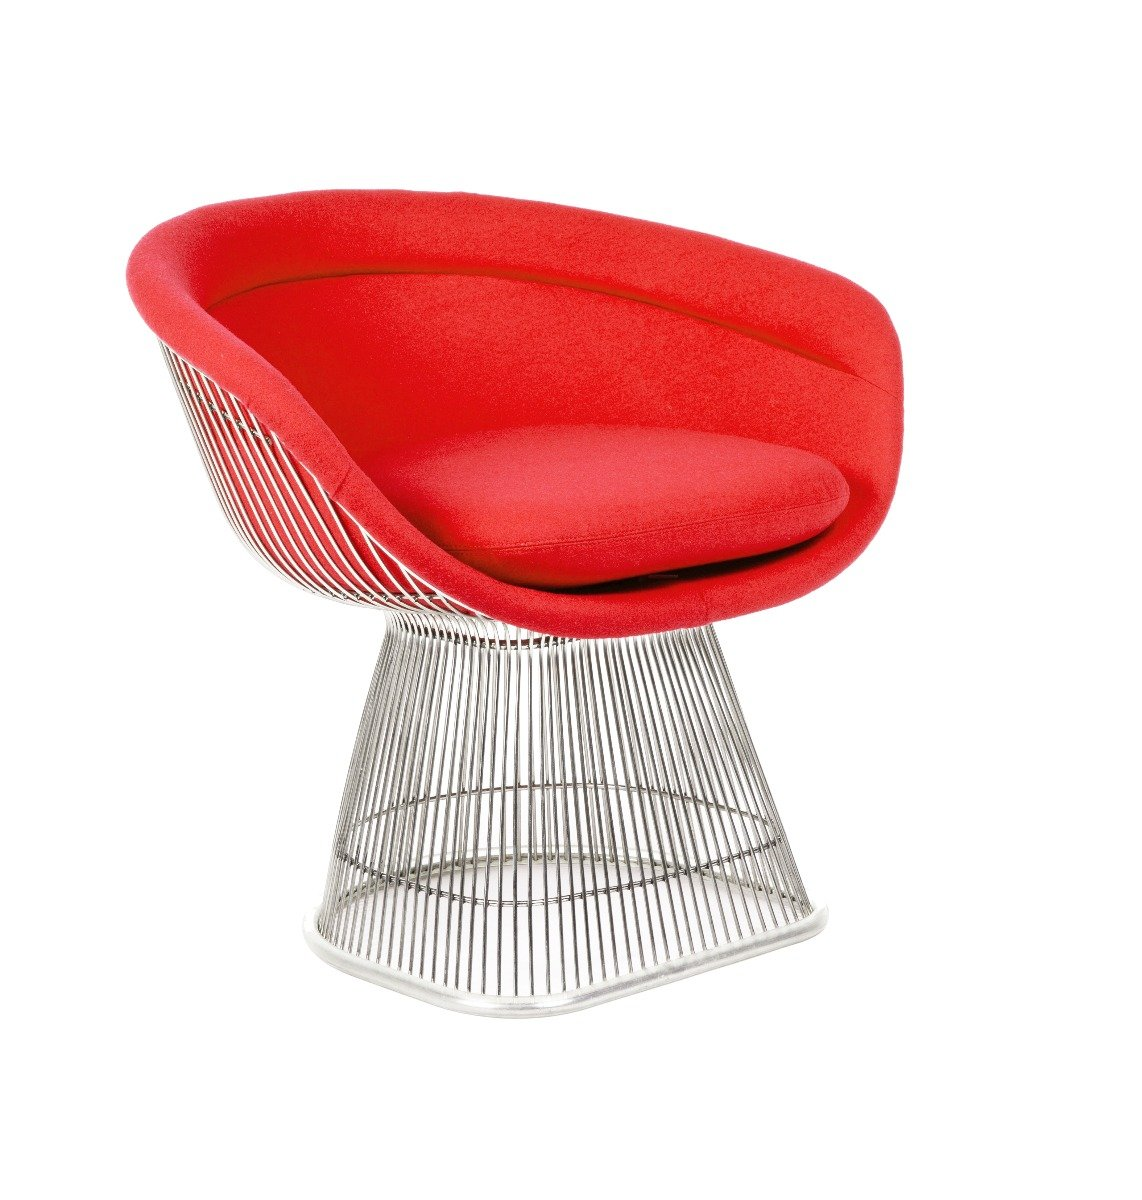 Warrens | Platner Lounge Chair Furniture-Living Room-Lounge Chairs